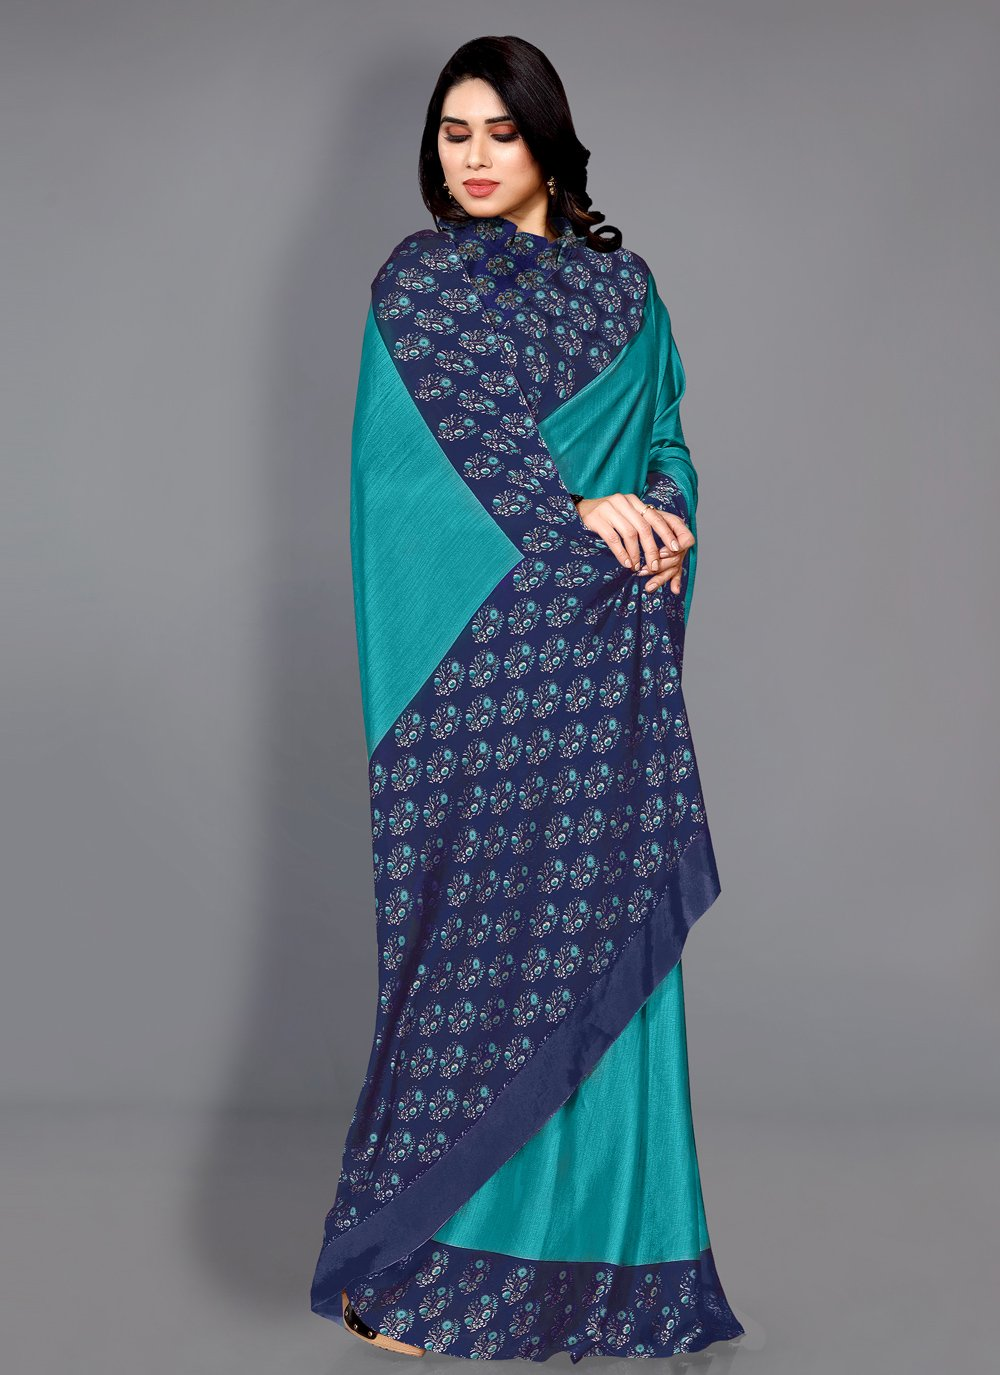 Turquoise Faux Chiffon Casual Traditional Saree